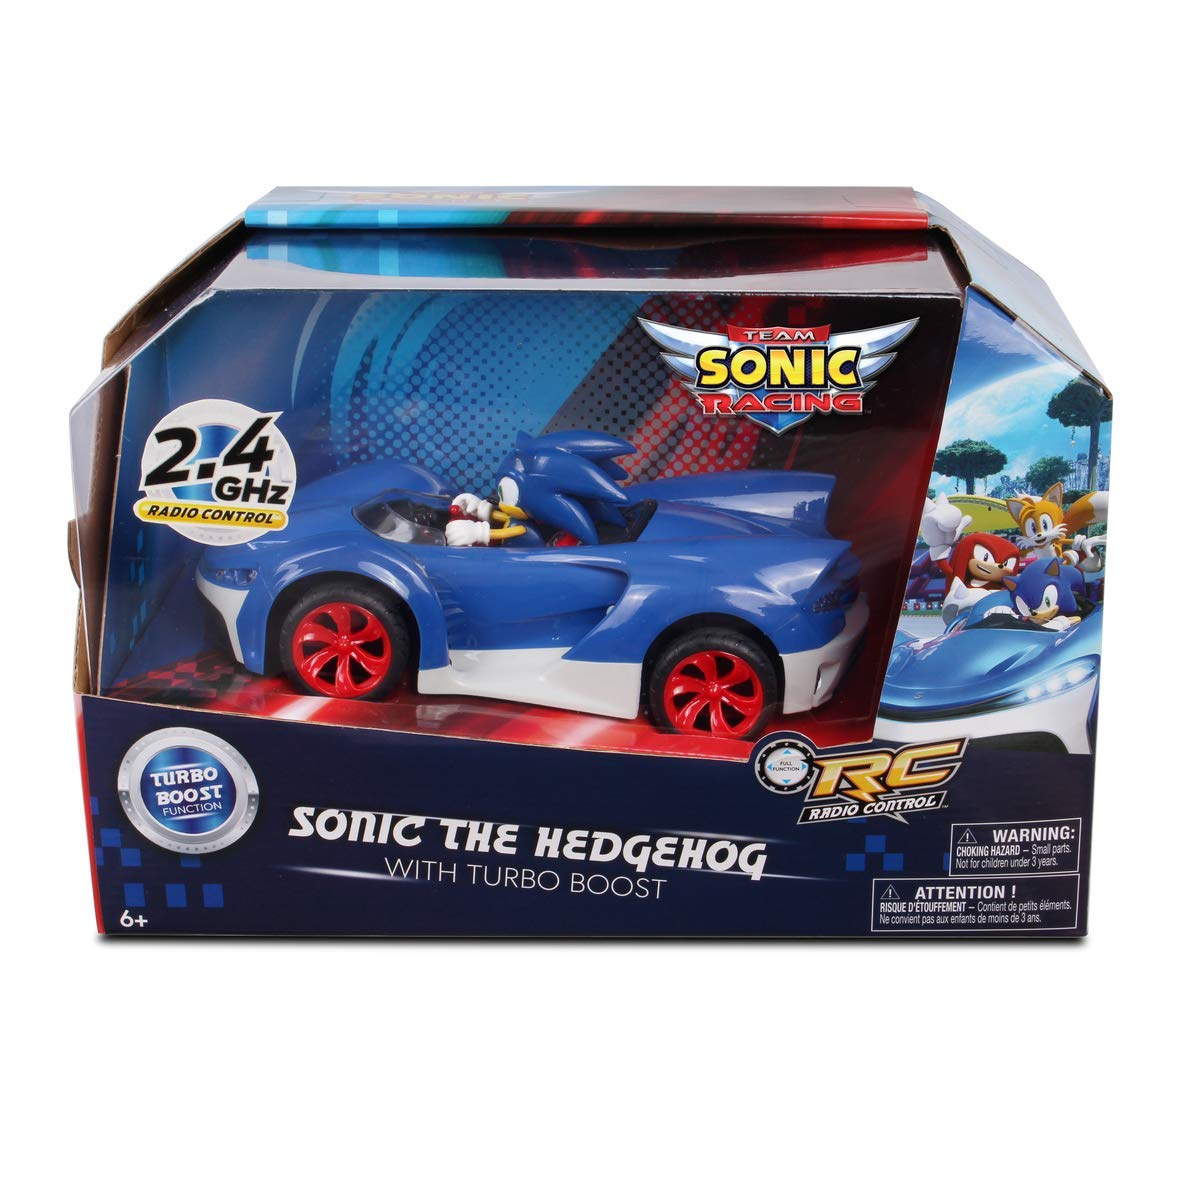 Amazon.com: NKOK Team Sonic Racing 2.4Ghz Remote Controlled Car with Turbo Boost - Shadow The Hedgehog: Toys & Games